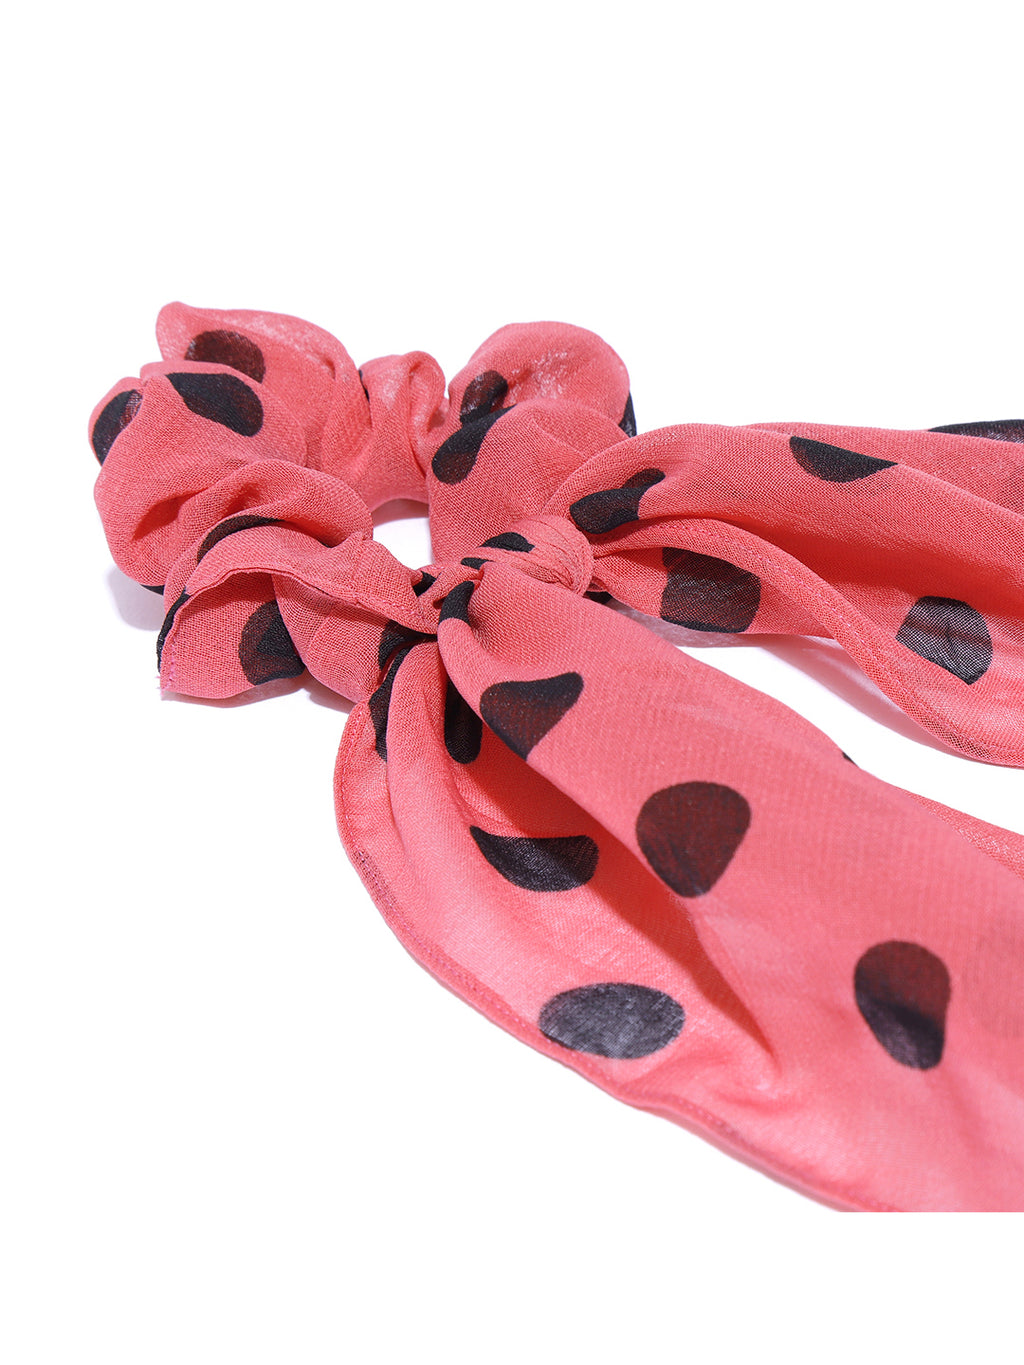 Blueberry black doted pink ruffle scrunchie